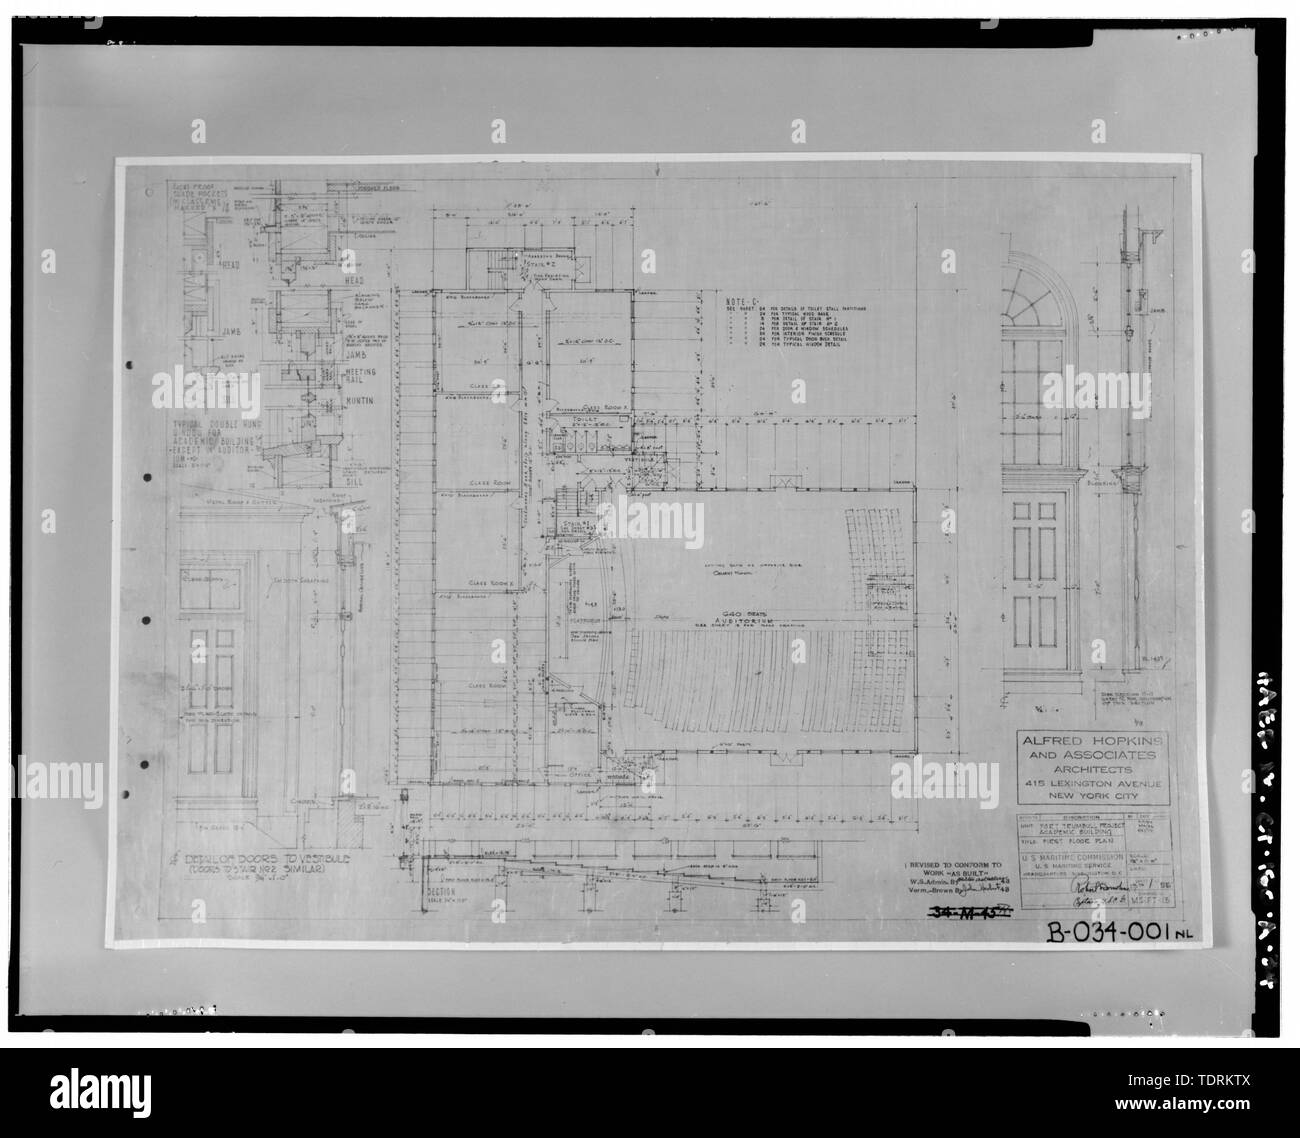 Photographic copy of first floor plan of Bowditch Hall, Alfred Hopkins and Associates, 1943. Drawing on file at Caretaker Site Office, Naval Undersea Warfare Center, New London. Copyright-free. - Naval Undersea Warfare Center, Bowditch Hall, 600 feet east of Smith Street and 350 feet south of Columbia Cove, West bank of Thames River, New London, New London County, CT - Stock Image